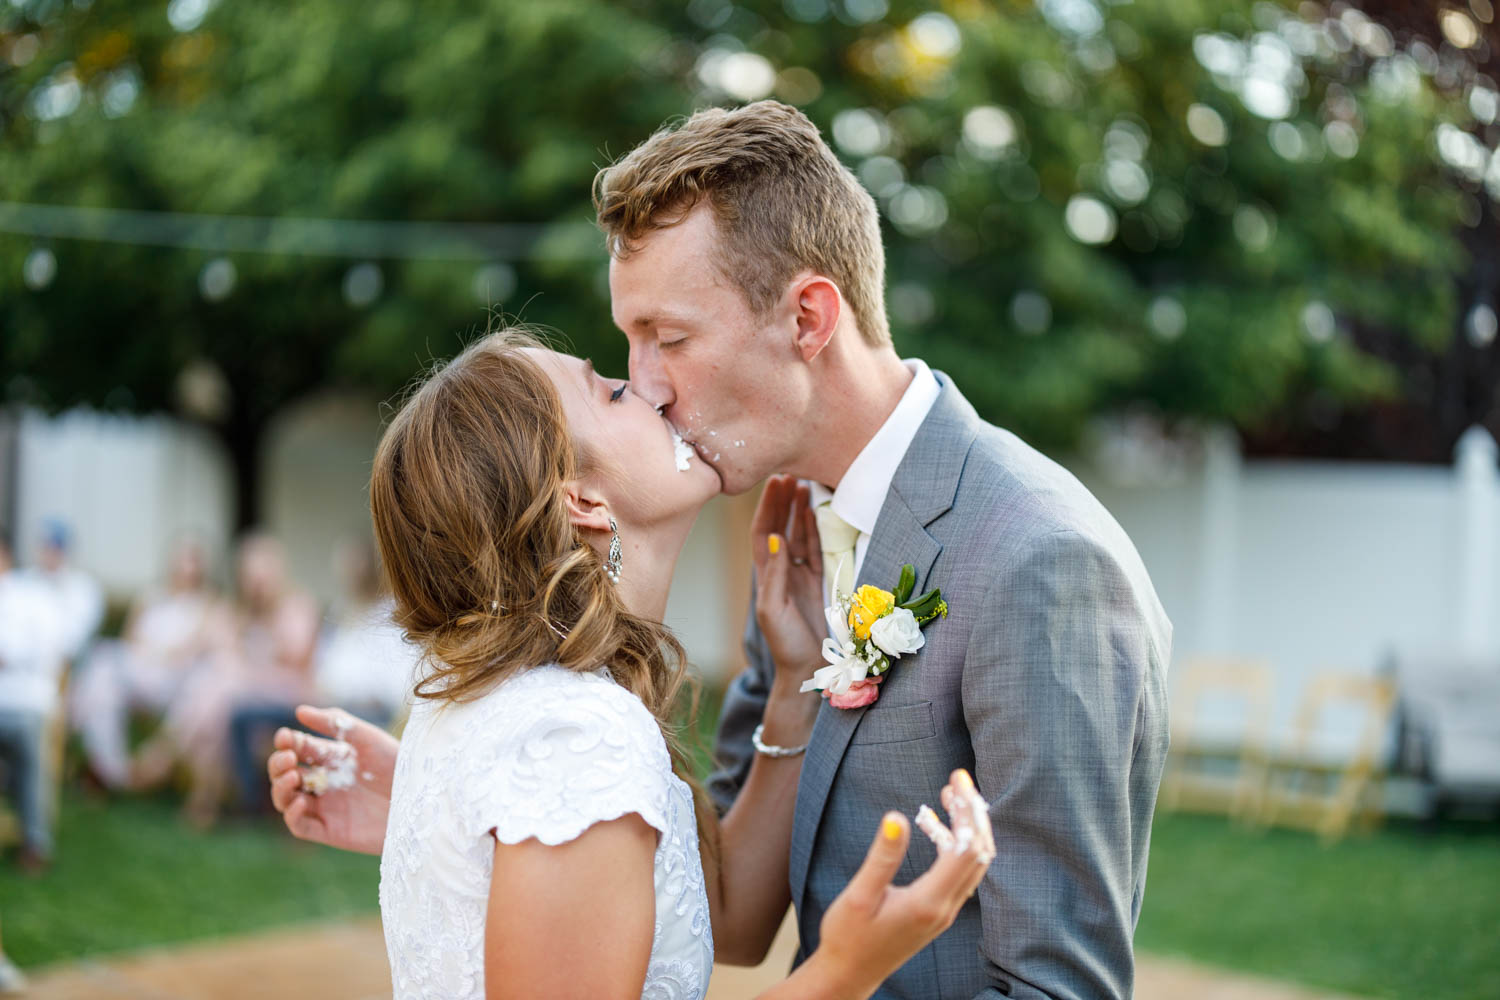 A kiss after the cake smash